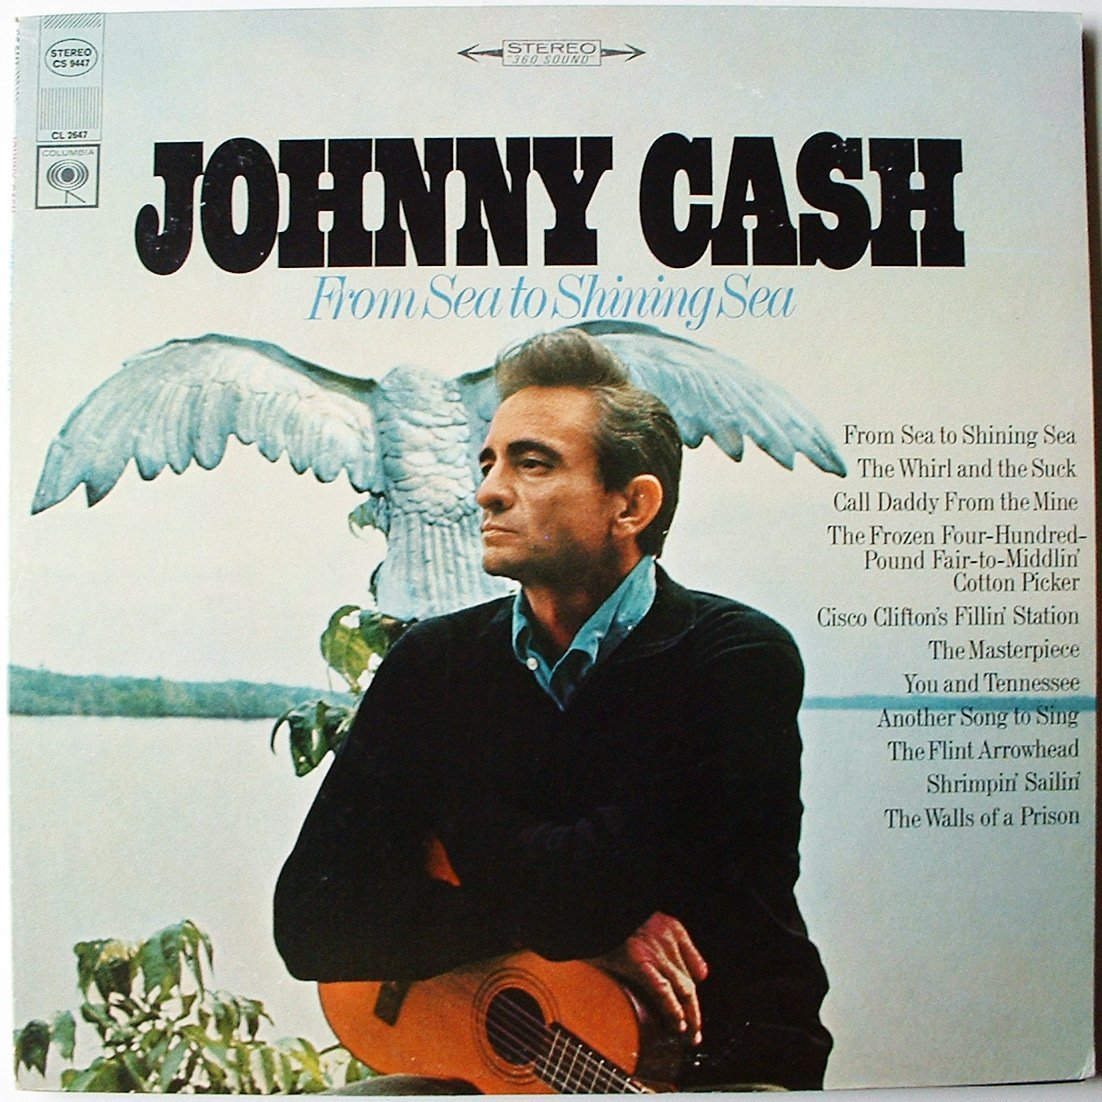 Johnny Cash - From Sea To Shining Sea (1968)